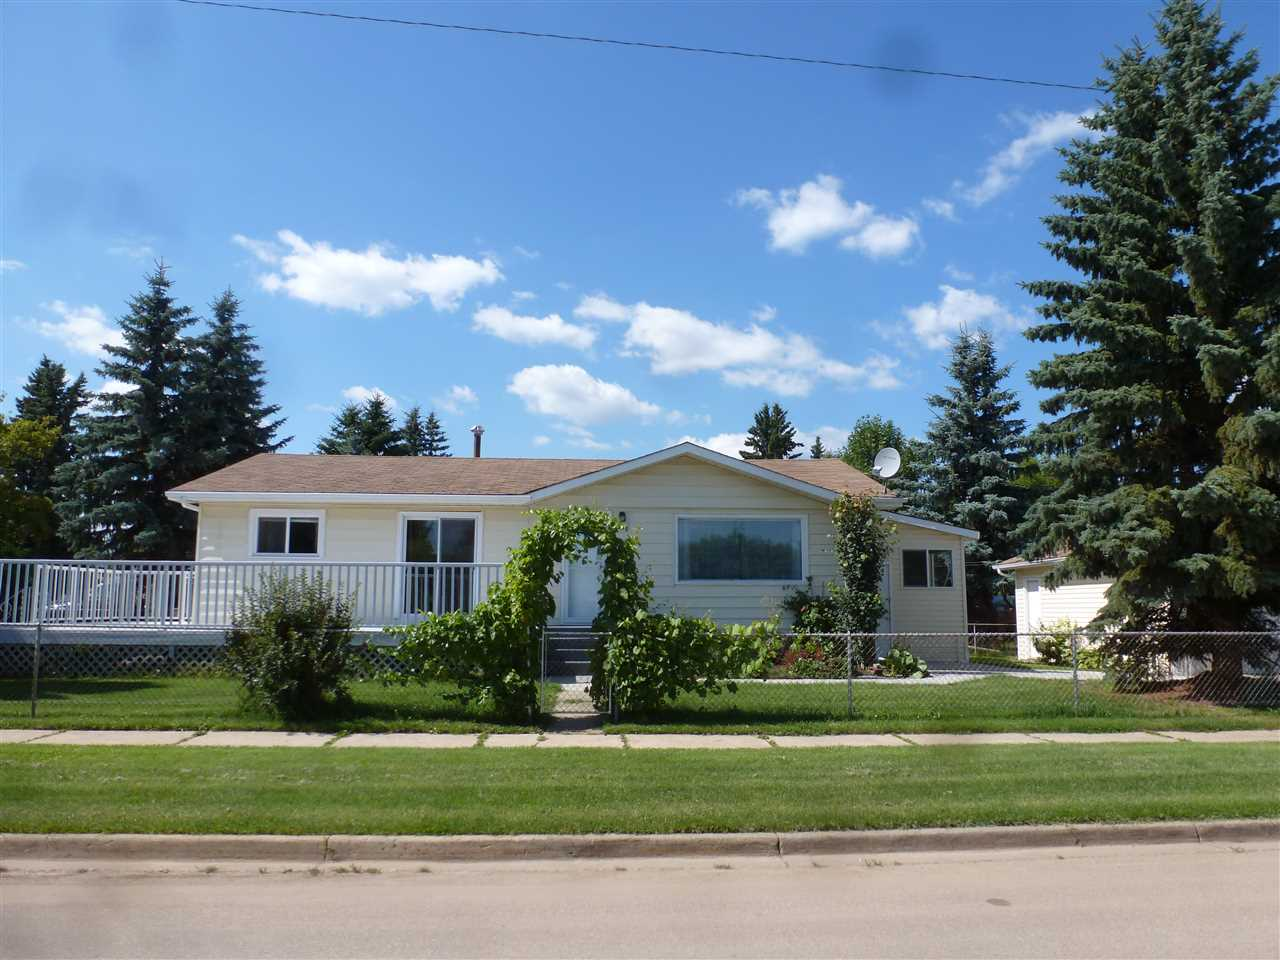 *New Price - $259,900* for this Immaculate Renovated 1965 Bungalow in the terrific Town of Tofield located very close to the schools - walking distance. This fine 1146 Sq Ft family home comes with a 3-Season addition, huge raised deck at the front and a Double Detached Garage at the side. In addition to 3 Bedrooms and two 3-piece Bathrooms, the main floor features an Open Concept with a smart new Kitchen with Breakfast Bar, a Dining area and spacious Living Room. Laundry is on the main floor at the entrance off of the 3-season room. The basement is fully finished and includes   another rather large Bedroom, an open Family Room and a Workshop area. The property is Fully-fenced and landscaped with East-facing Deck and Firepit at the side. Great family home in a town that has everything you need - Schools, Hospital, Shopping, etc. *Formal Dining Room can be converted back to the 3rd Bedroom on the main floor if Buyers prefer.